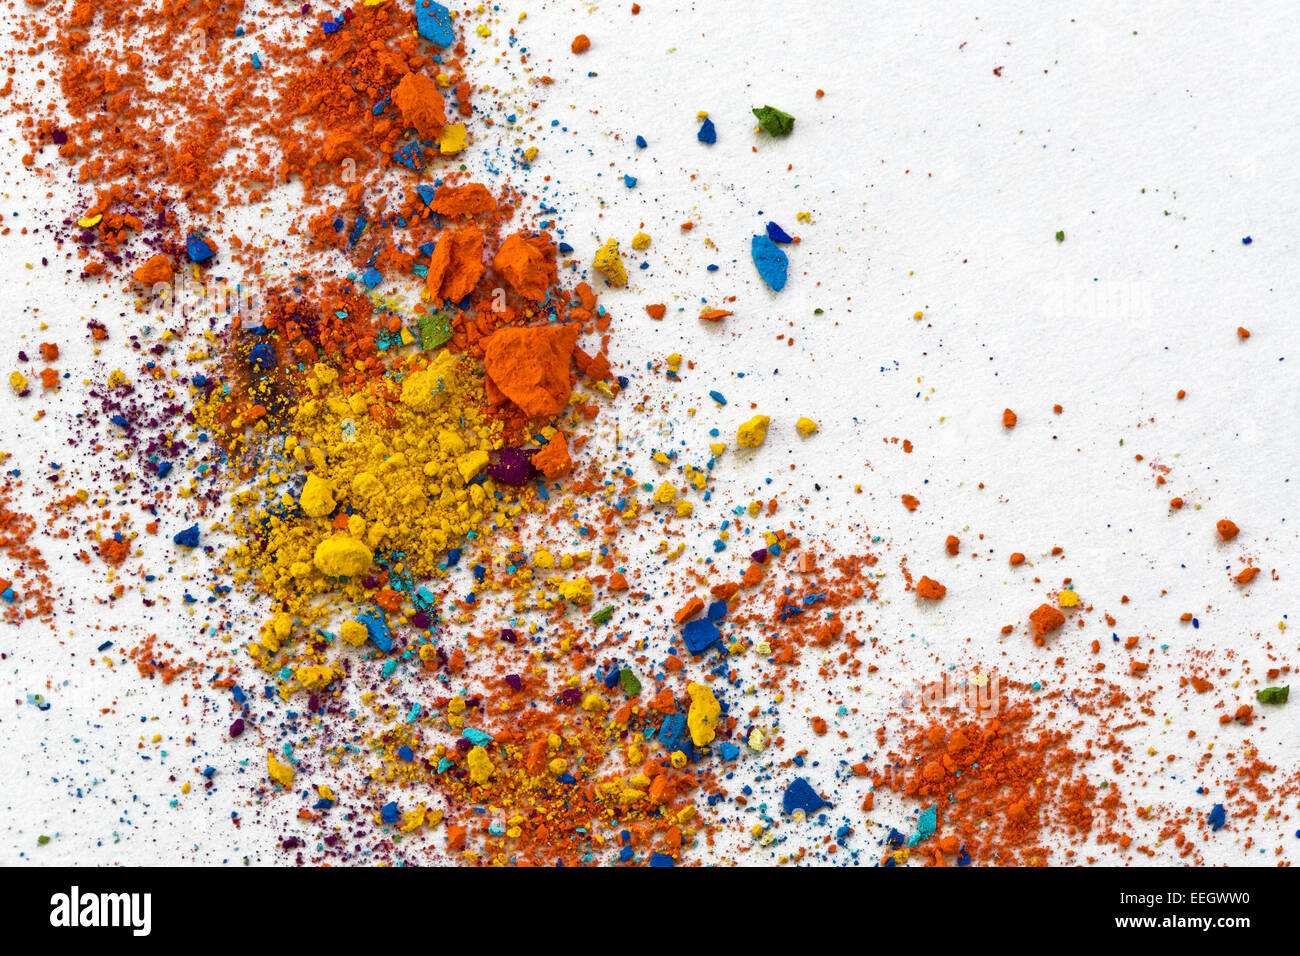 Colorful Pastel Chalk Crumbs - Stock Image